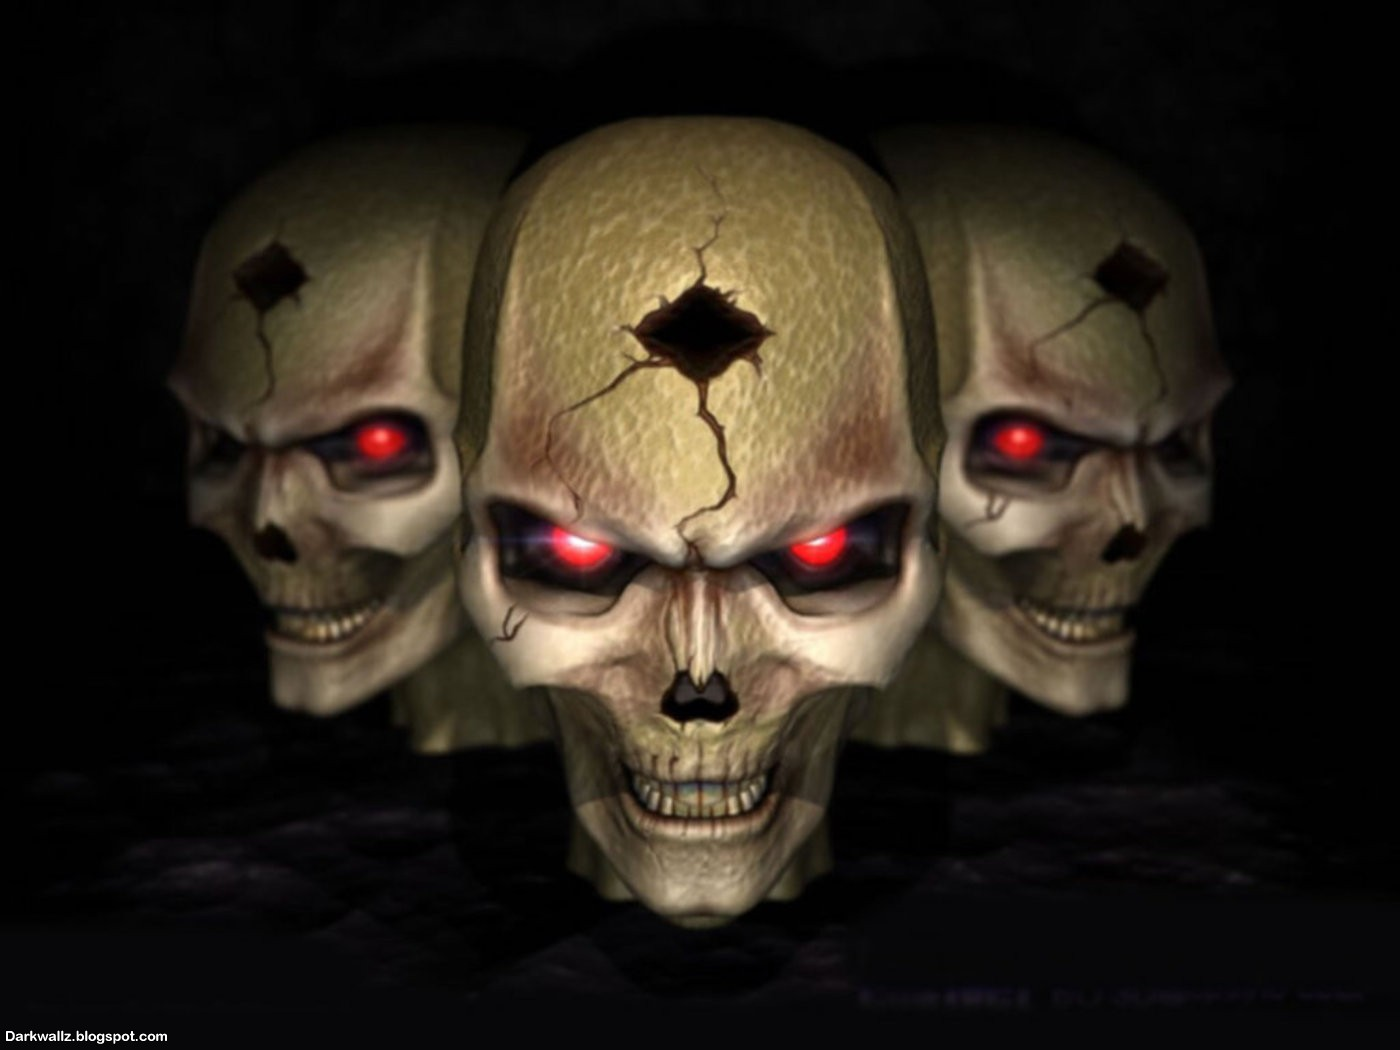 Skulls Wallpapers 70 | Dark Wallpaper Download